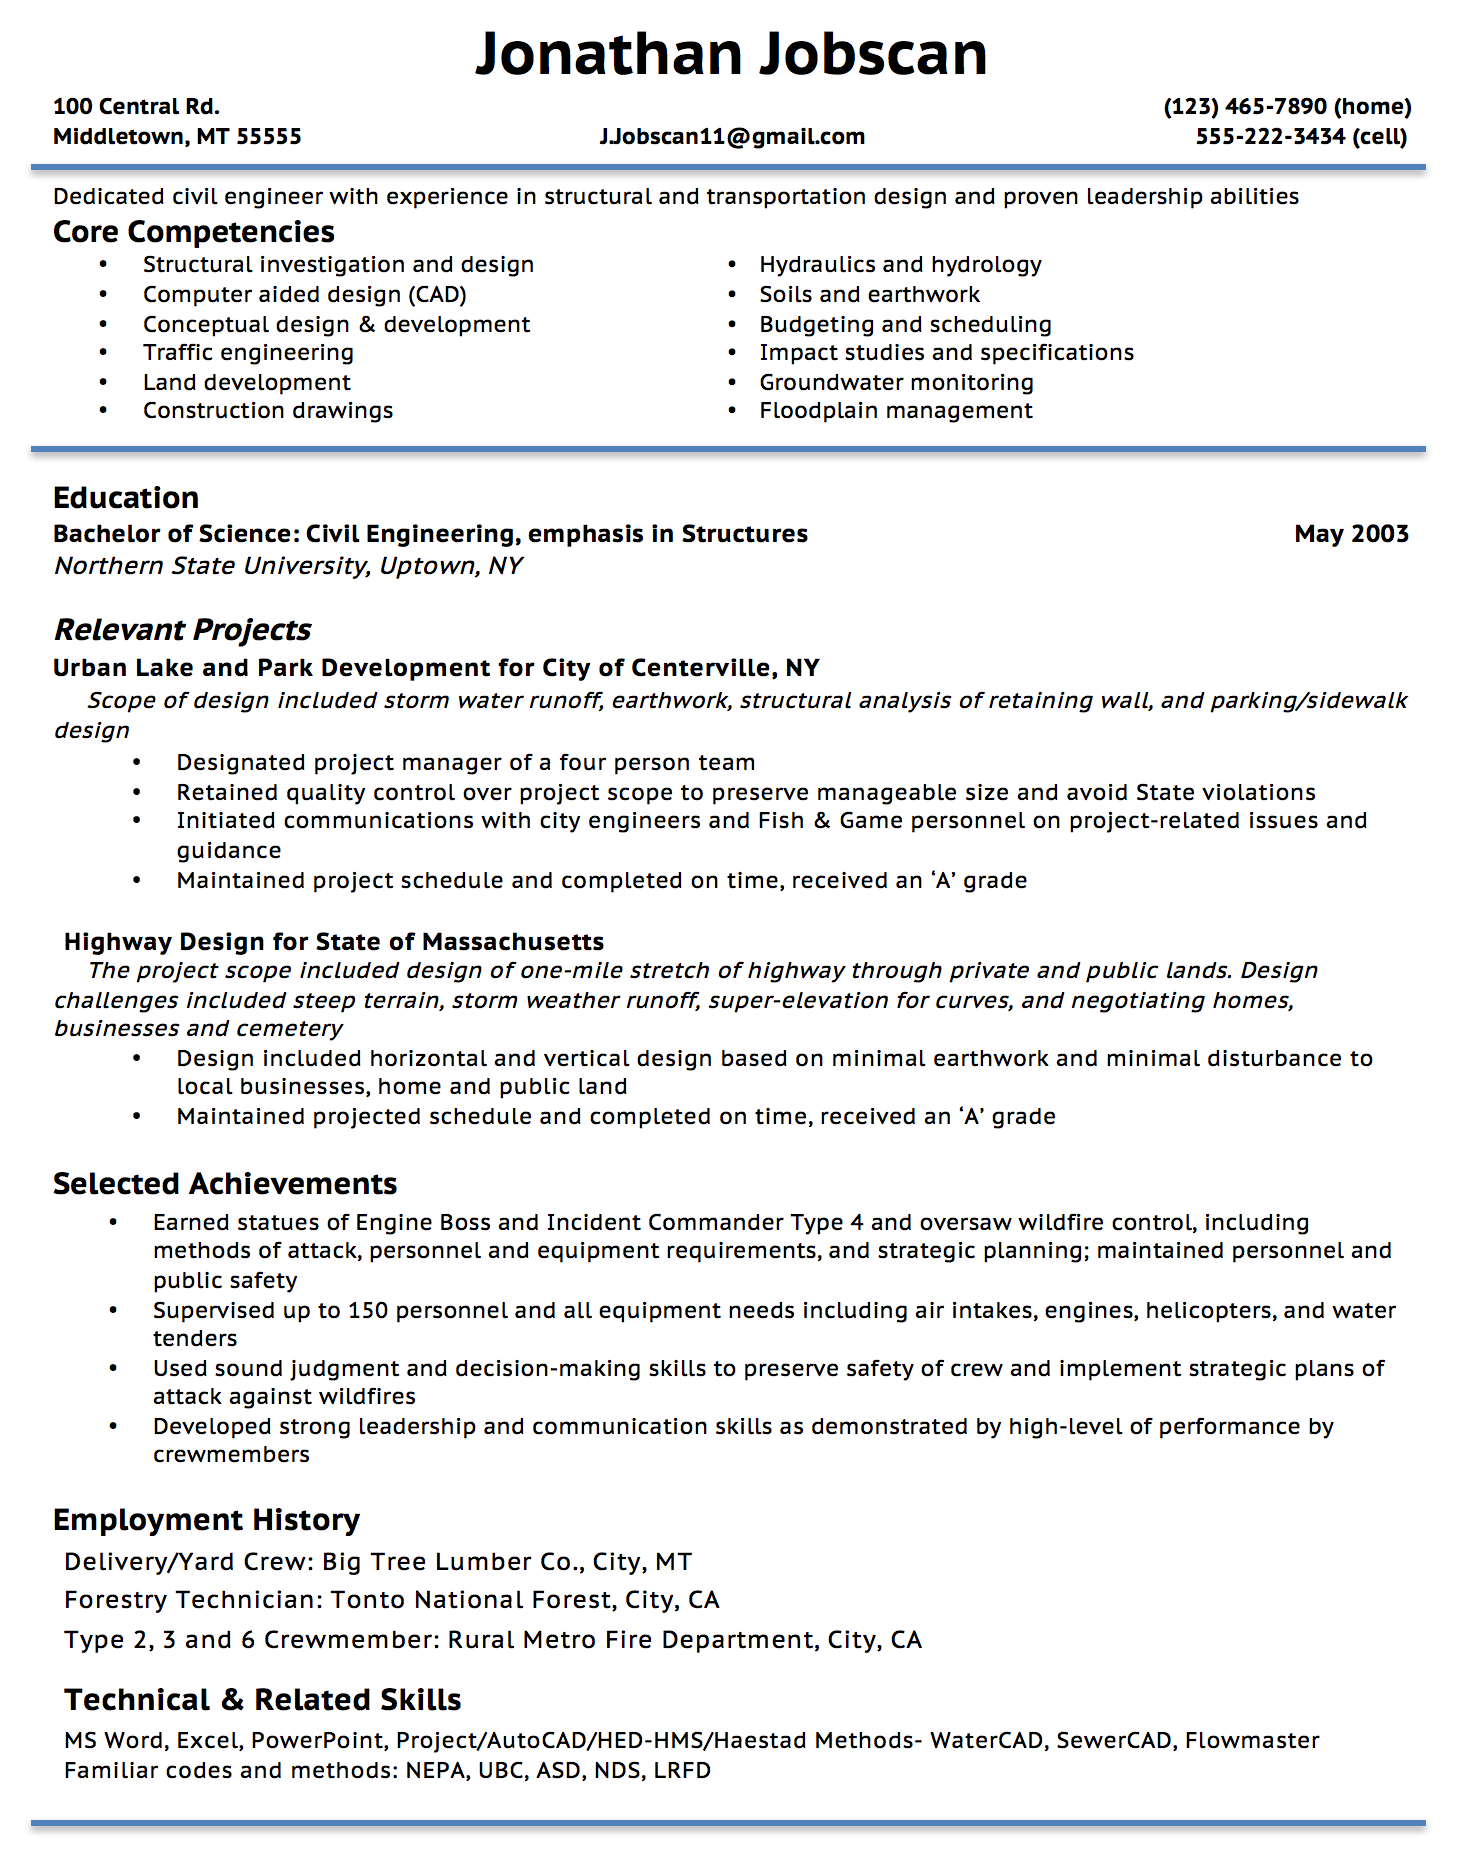 Opposenewapstandardsus  Seductive Resume Writing Guide  Jobscan With Goodlooking Example Of A Functional Resume Format With Endearing On Error Resume Next Vba Also My Perfect Resume Phone Number In Addition Amazing Resumes And Federal Resume Examples As Well As Google Doc Resume Additionally What Should I Put On My Resume From Jobscanco With Opposenewapstandardsus  Goodlooking Resume Writing Guide  Jobscan With Endearing Example Of A Functional Resume Format And Seductive On Error Resume Next Vba Also My Perfect Resume Phone Number In Addition Amazing Resumes From Jobscanco